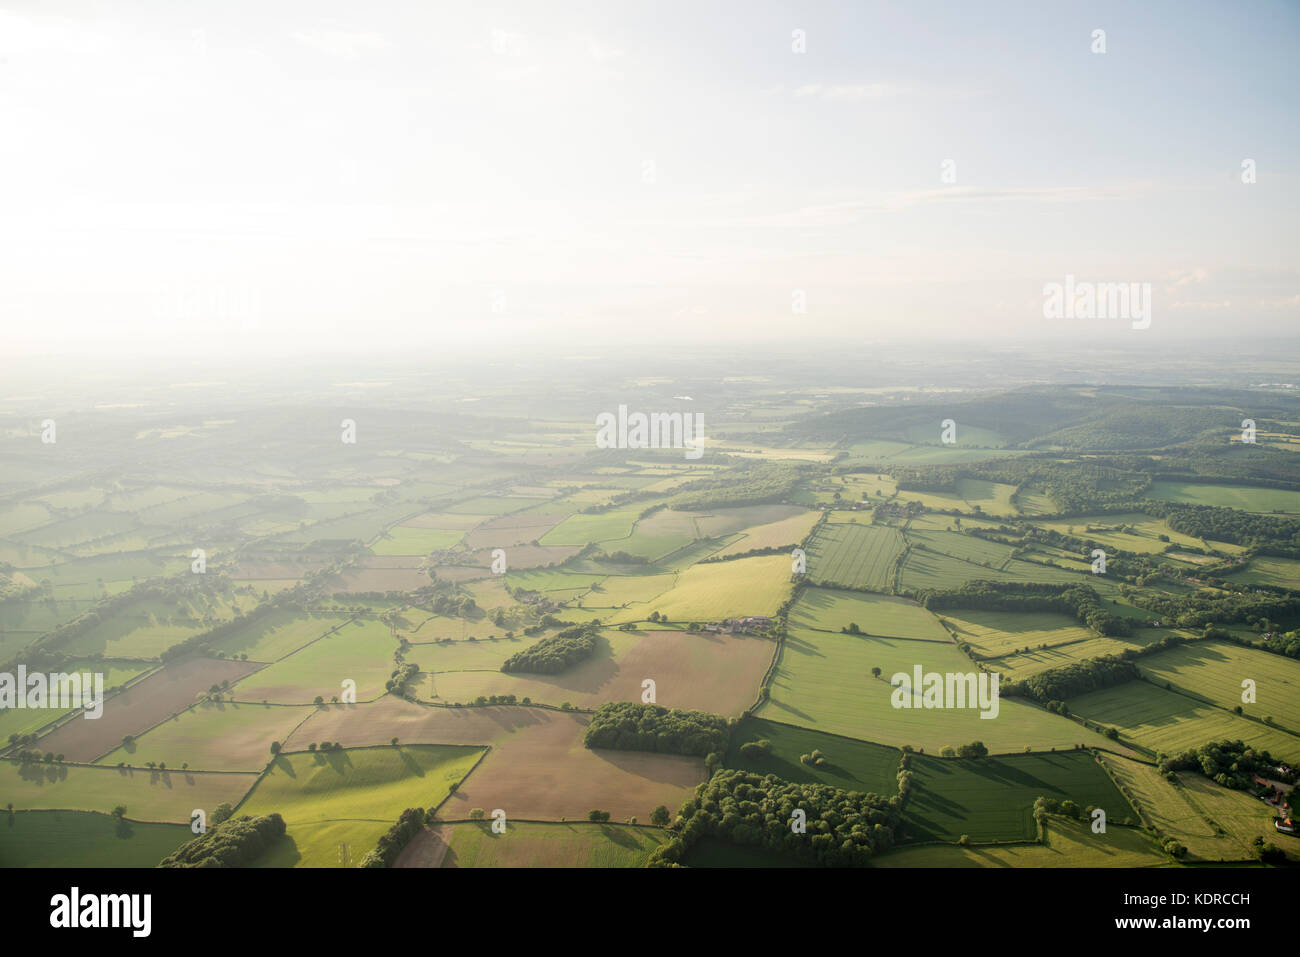 Aerial view of Buckinghamshire Landscape - United Kingdom - Hot air balloon aerial photography - Stock Image